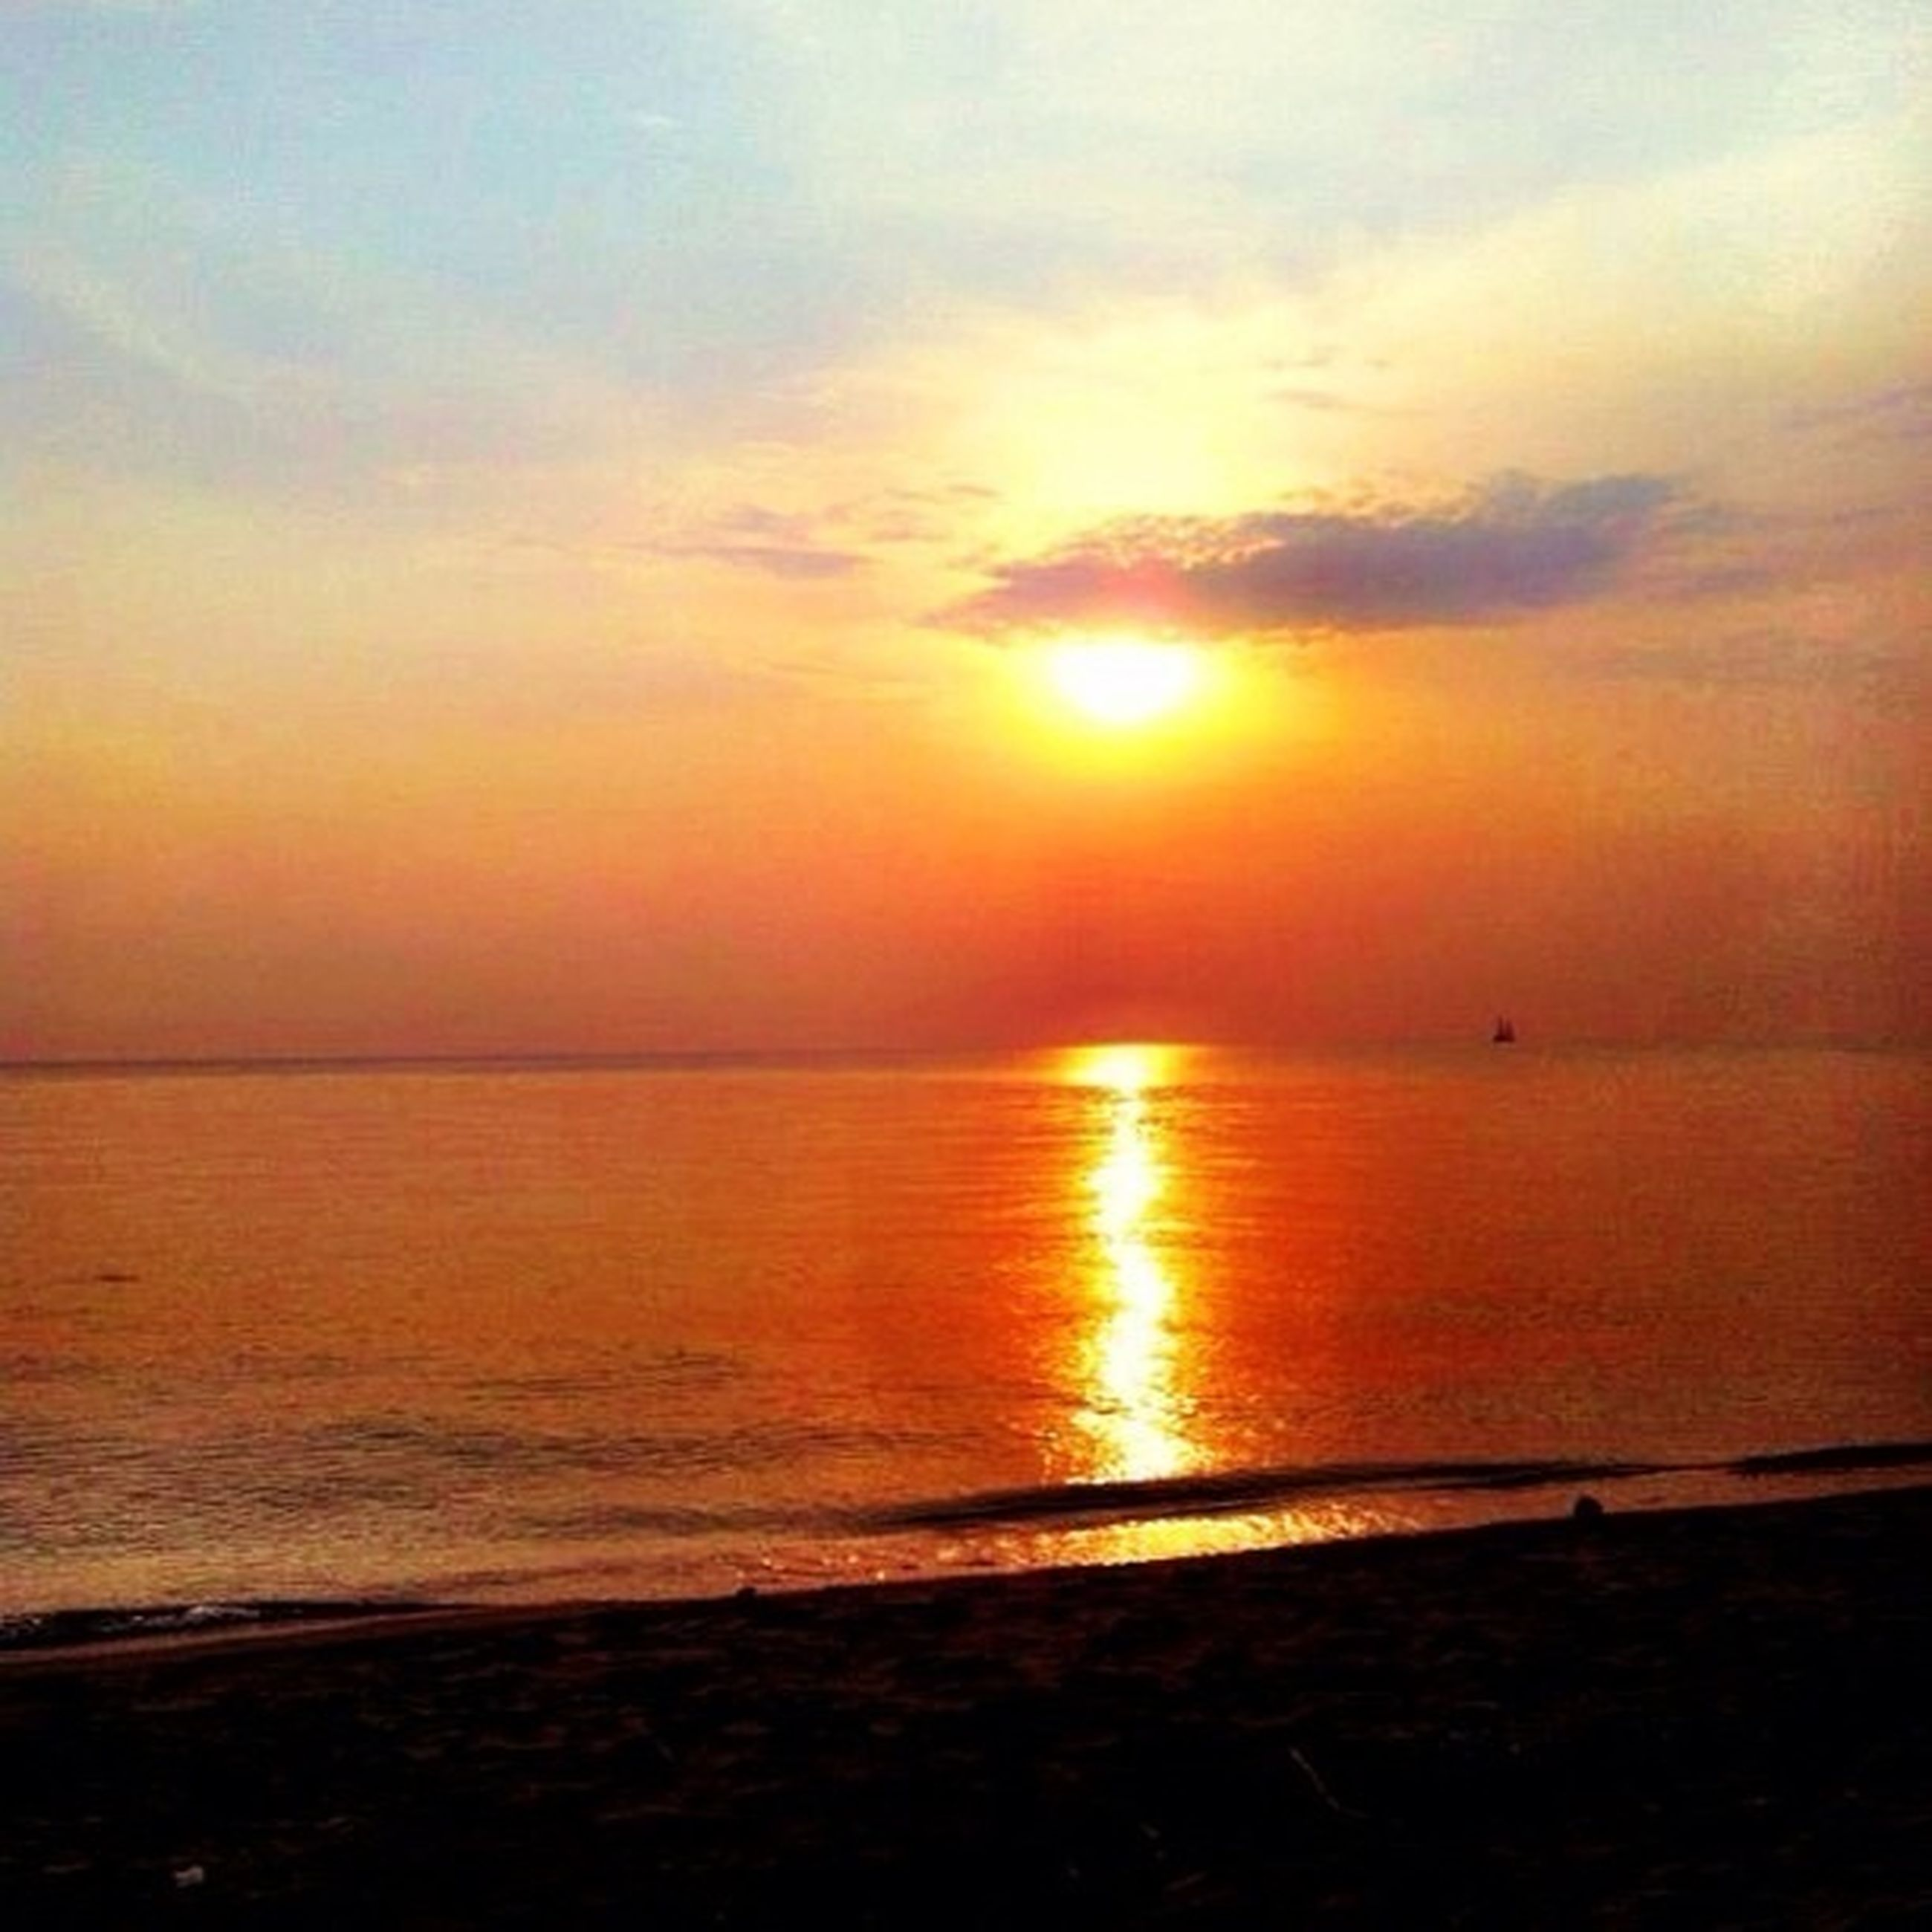 sunset, sea, water, horizon over water, sun, scenics, tranquil scene, tranquility, beauty in nature, sky, orange color, idyllic, reflection, beach, nature, silhouette, shore, sunlight, cloud - sky, outdoors